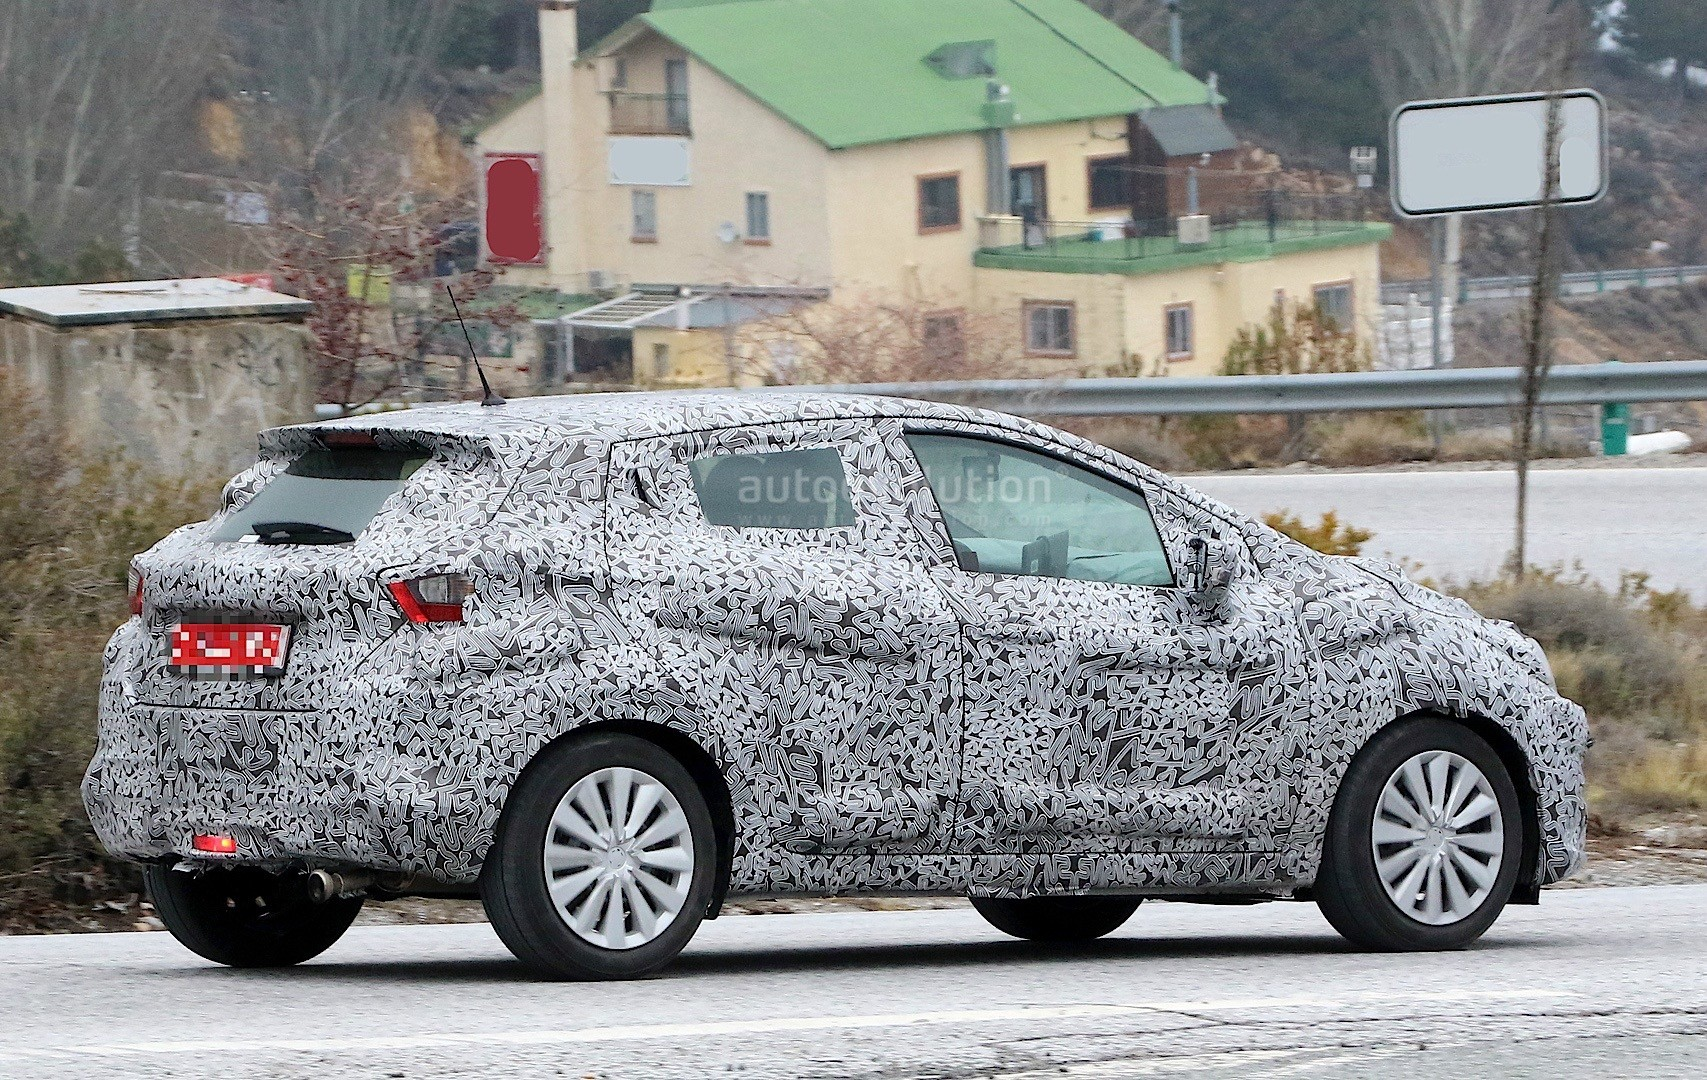 2017-nissan-micra-spied-in-spain_8